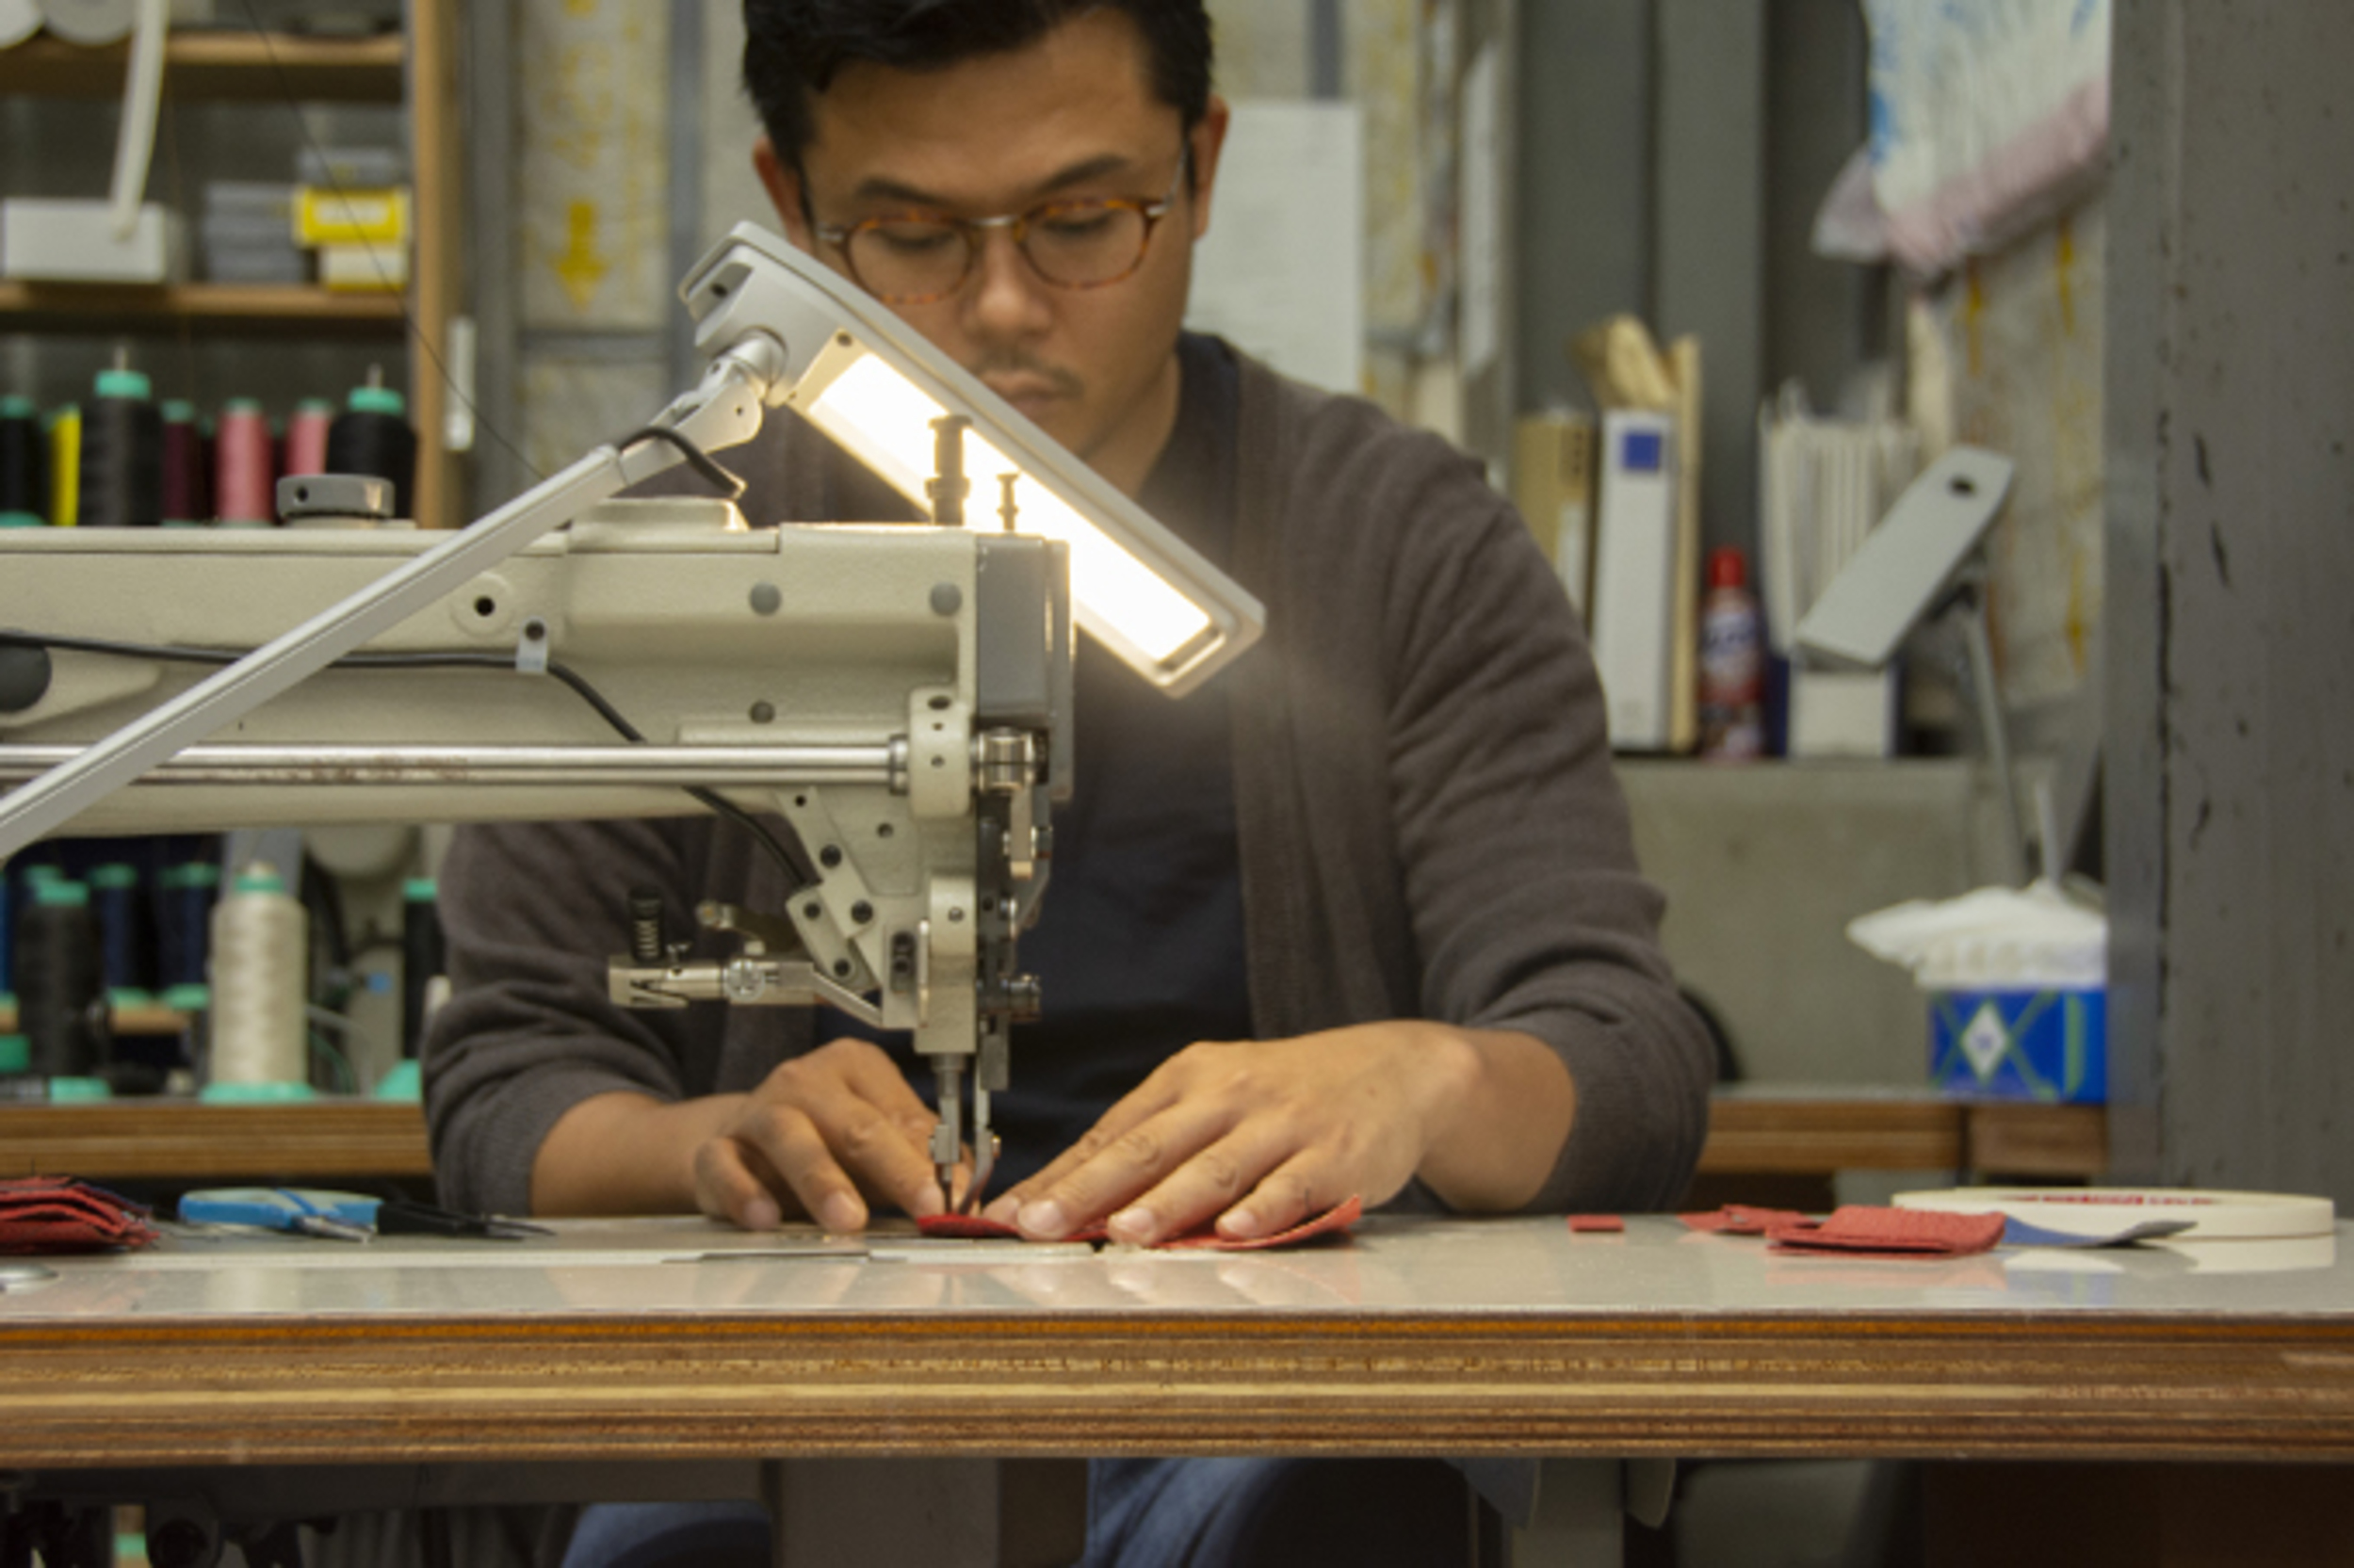 the entire production process skilled Japanese craftsmen are needed.100% made in Japan by local craftsmen. -